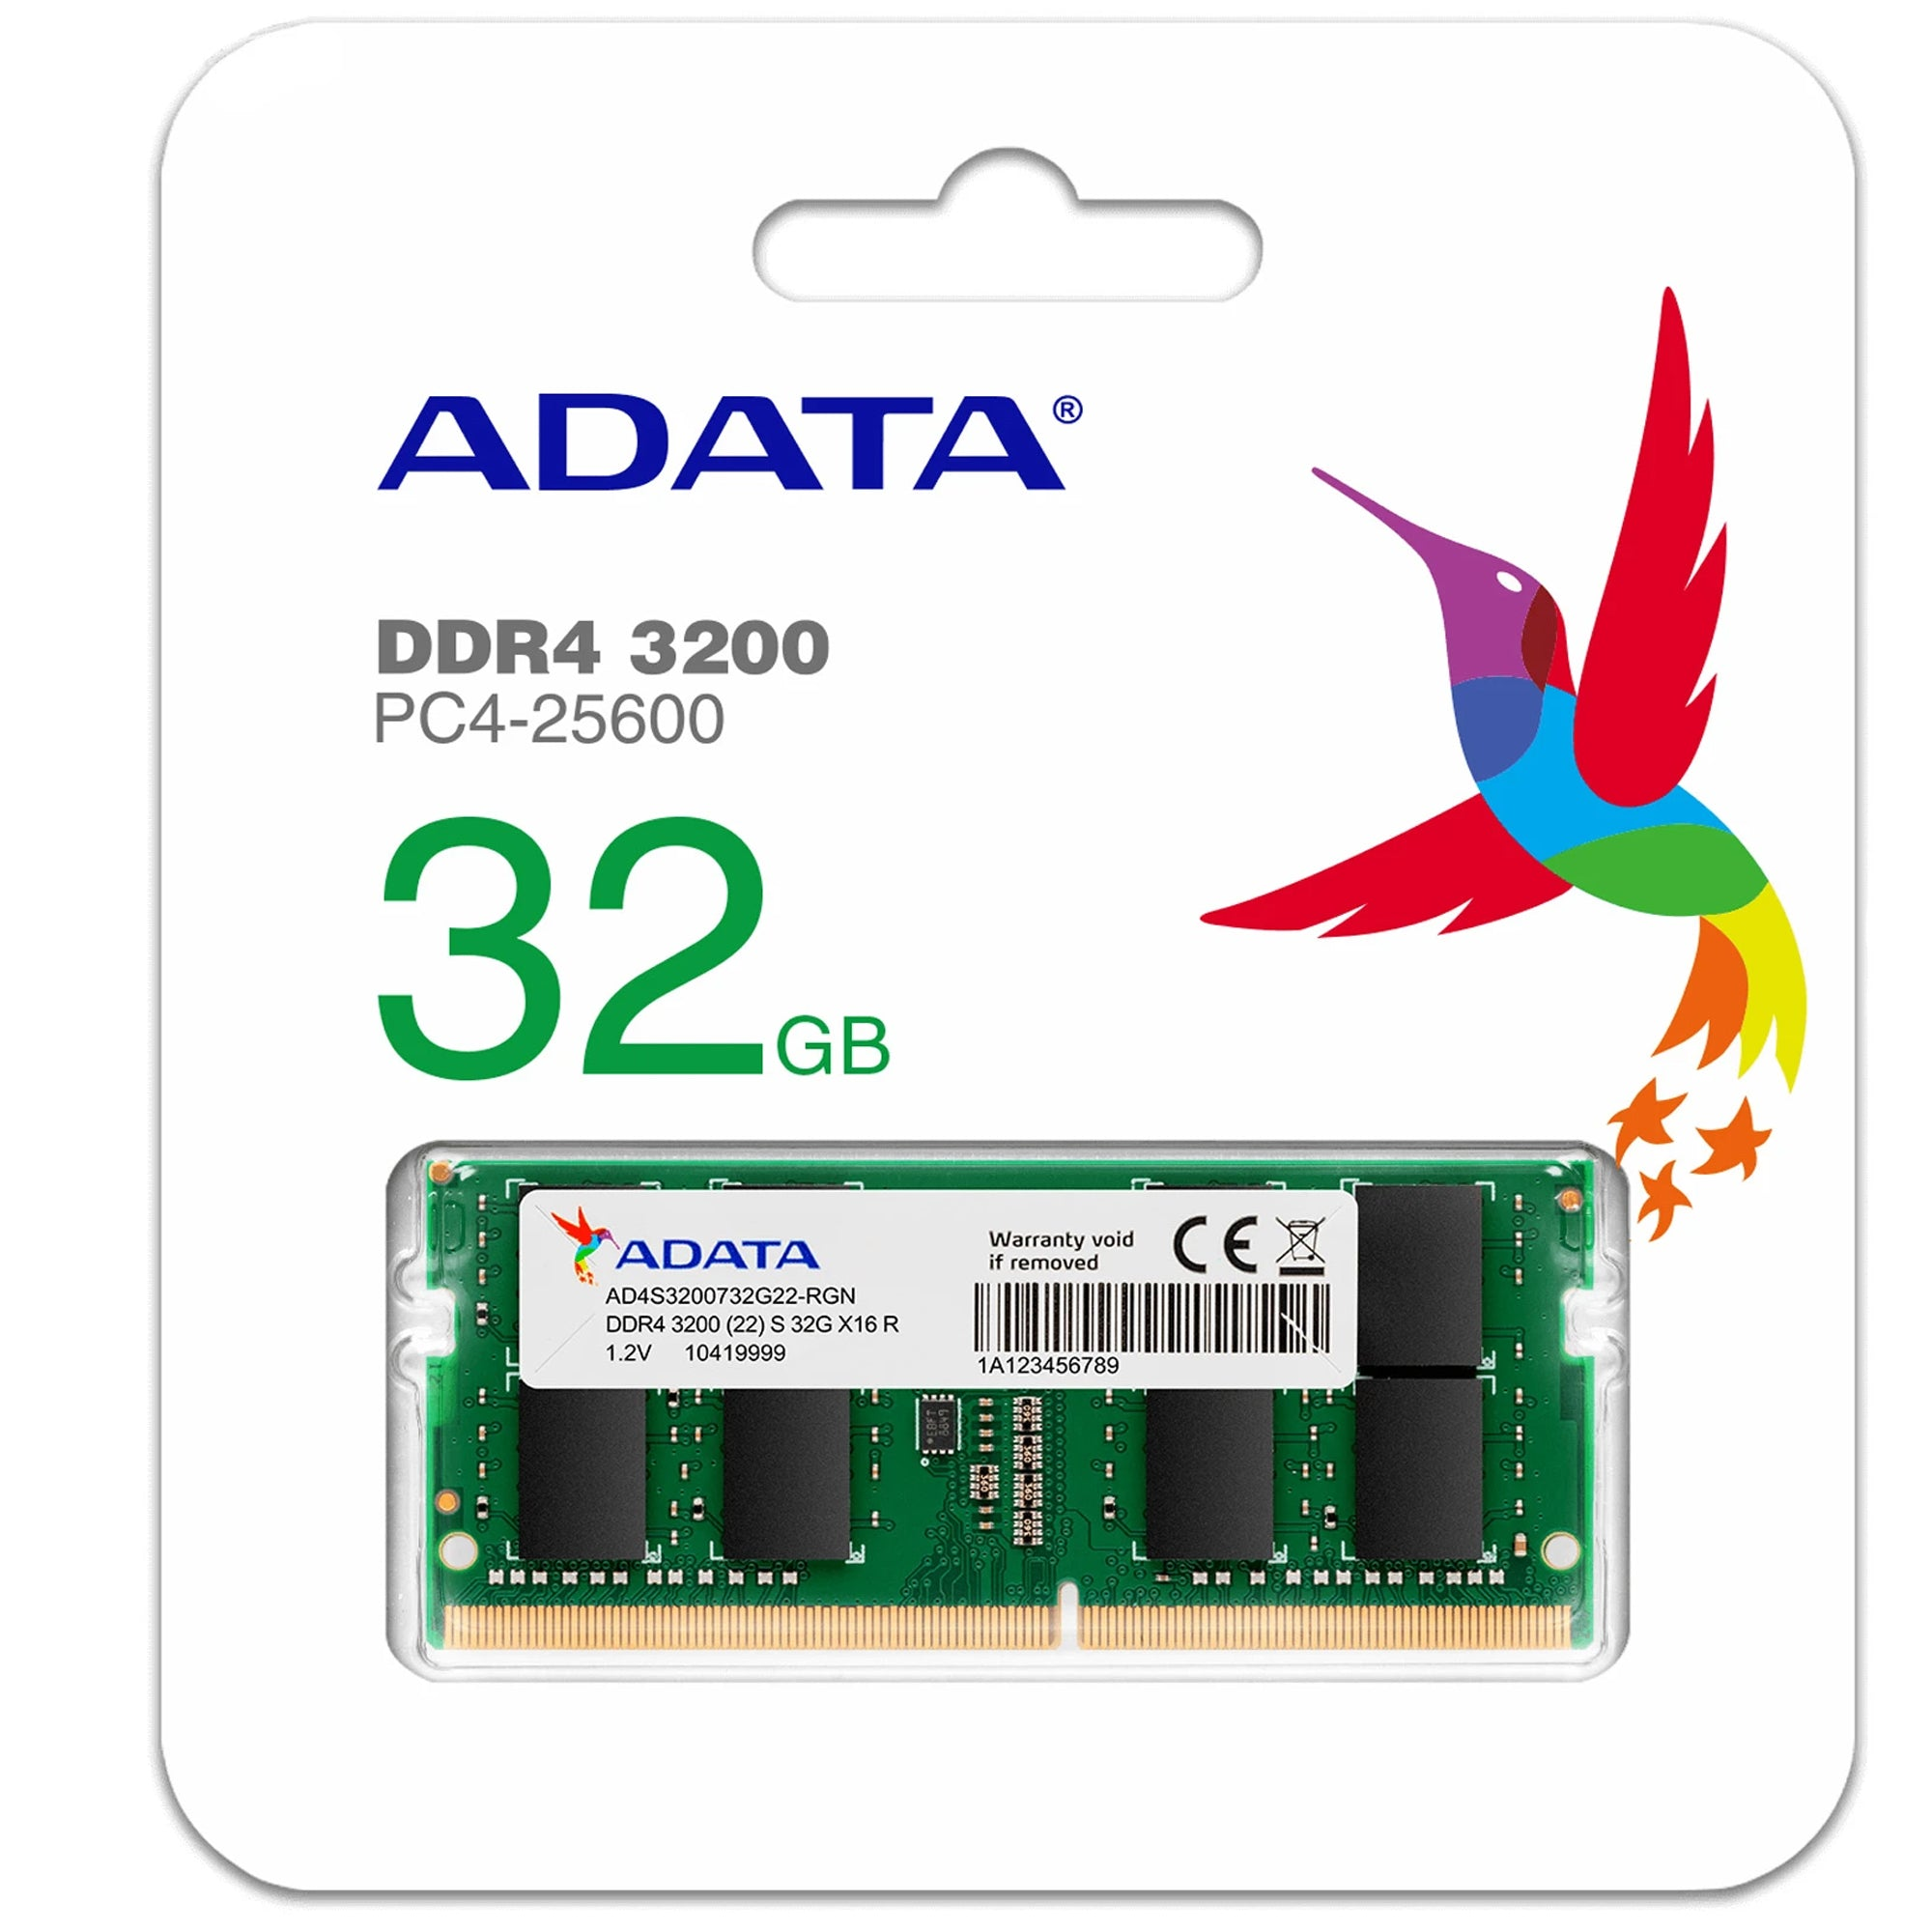 ADATA 32GB DDR4 3200MHz SO-DIMM LAPTOP RAM